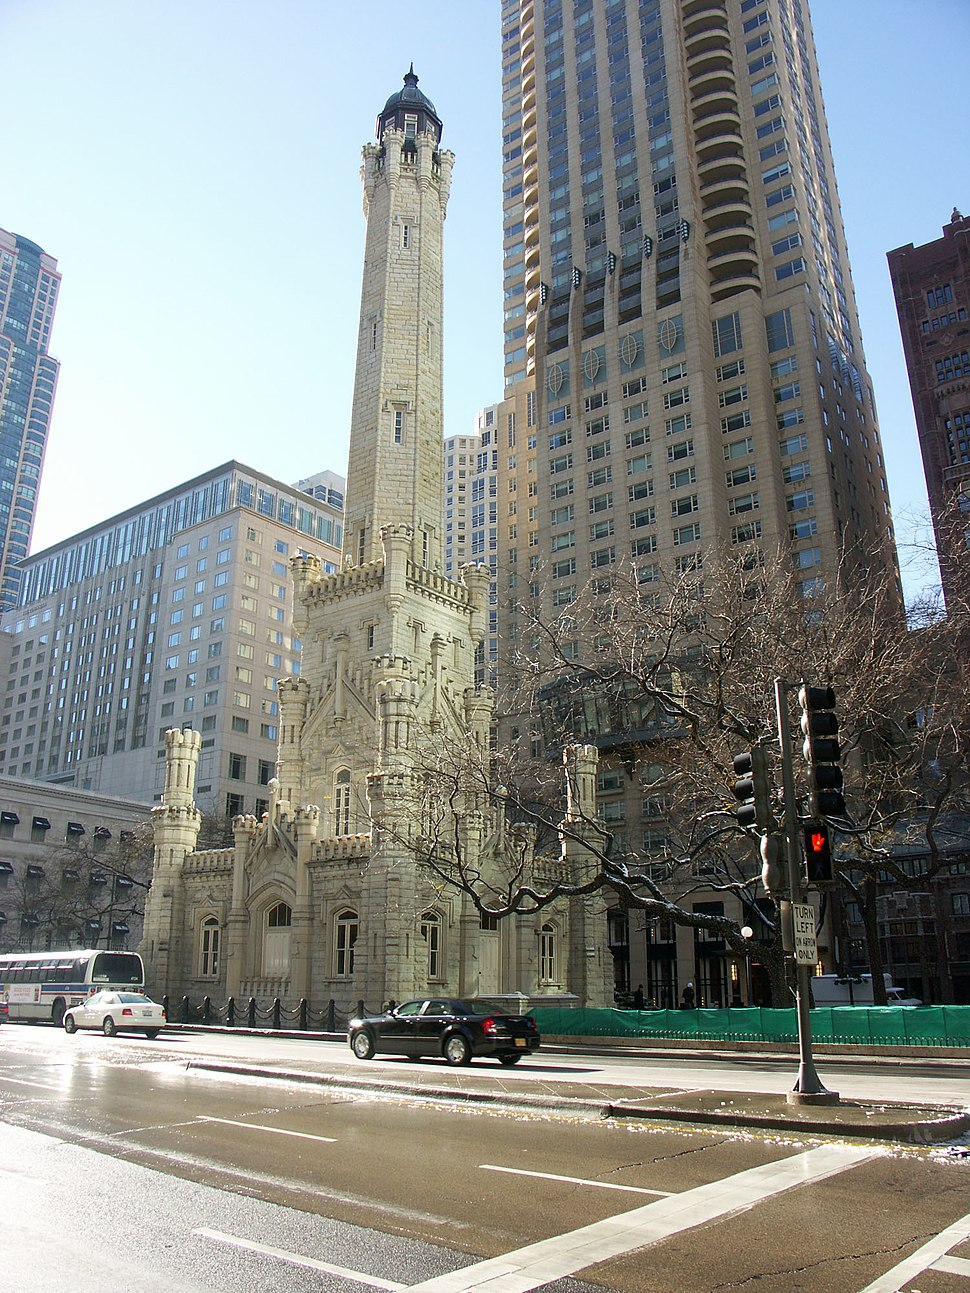 Water Tower - Chicago Nov 2004